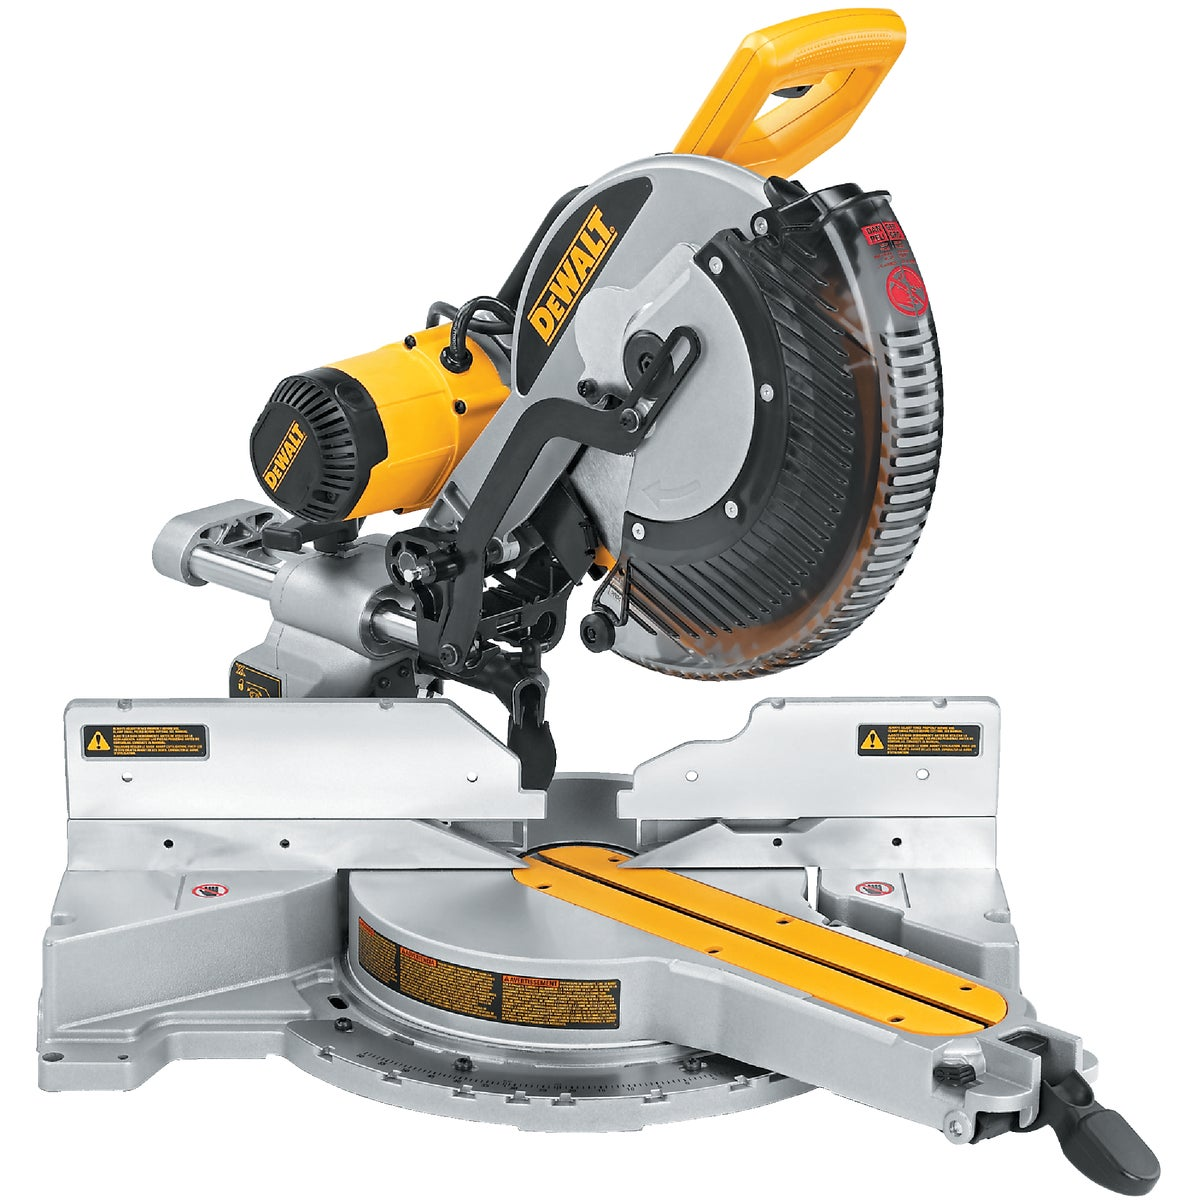 "12"" SLIDE CMPD MITER SAW - DWS780 by DeWalt"